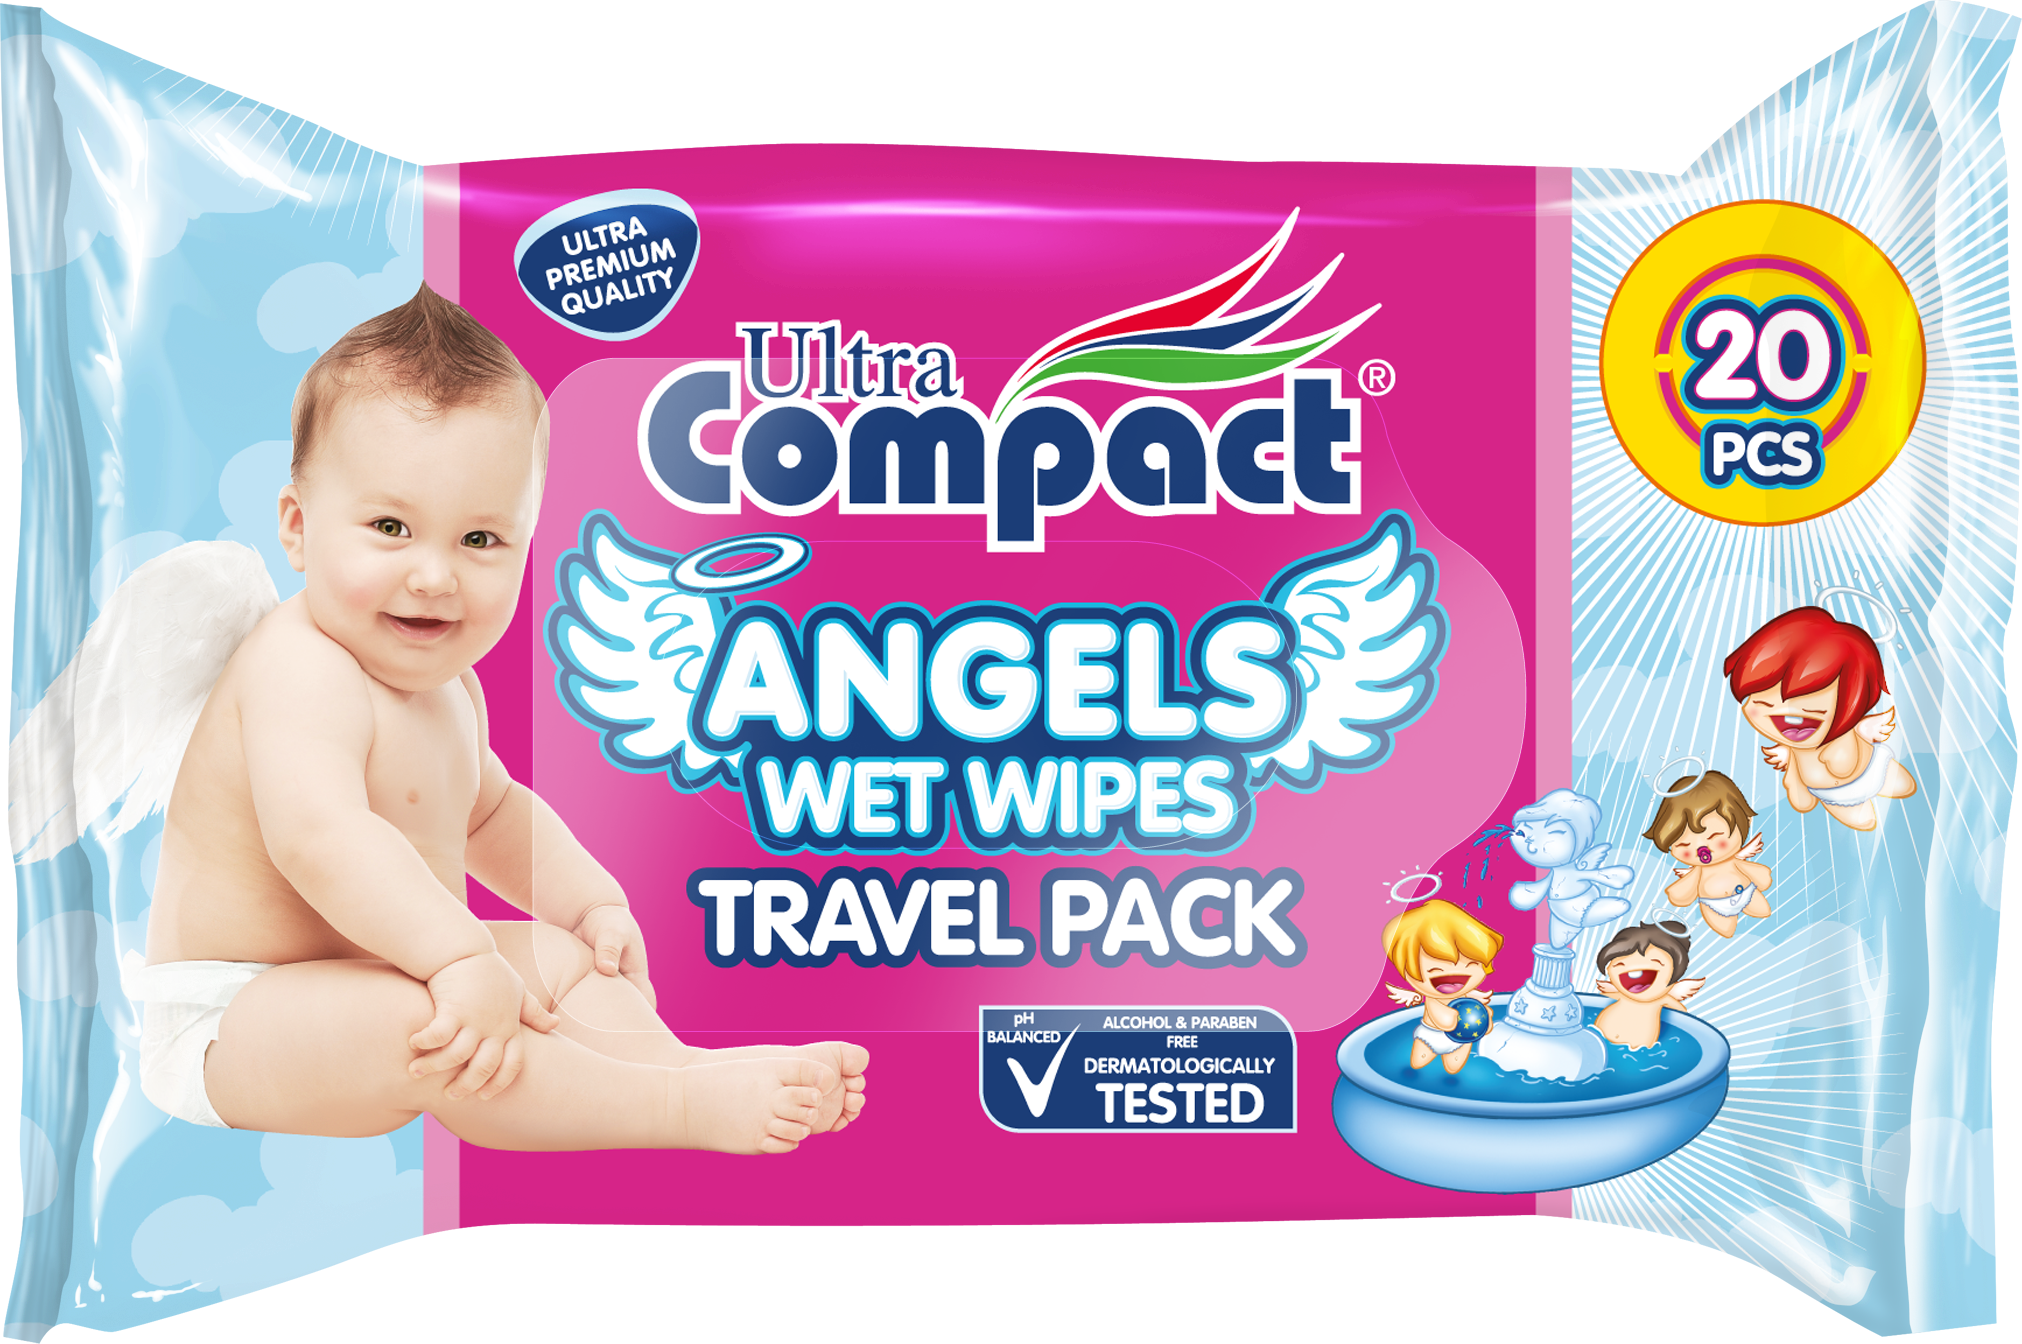 WET WIPES TRAVEL PACK